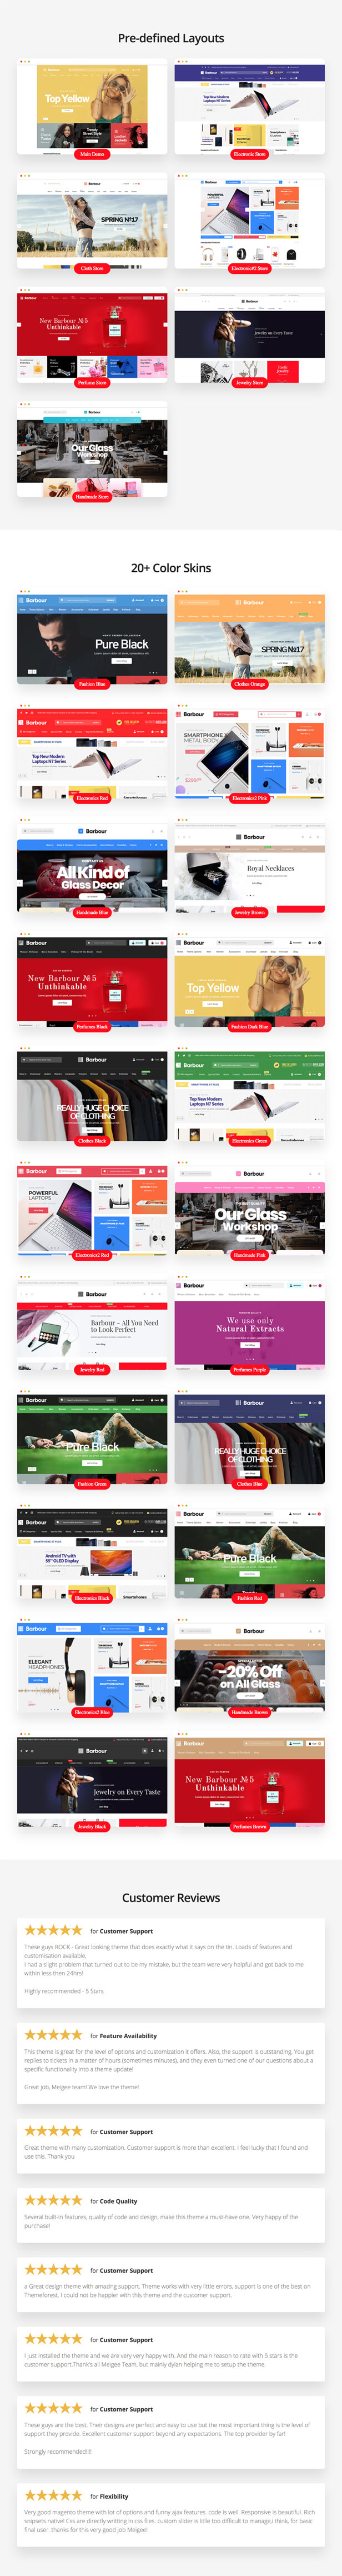 Barbour - Multi-Purpose Responsive Magento 2 and Magento 1 Theme - 6